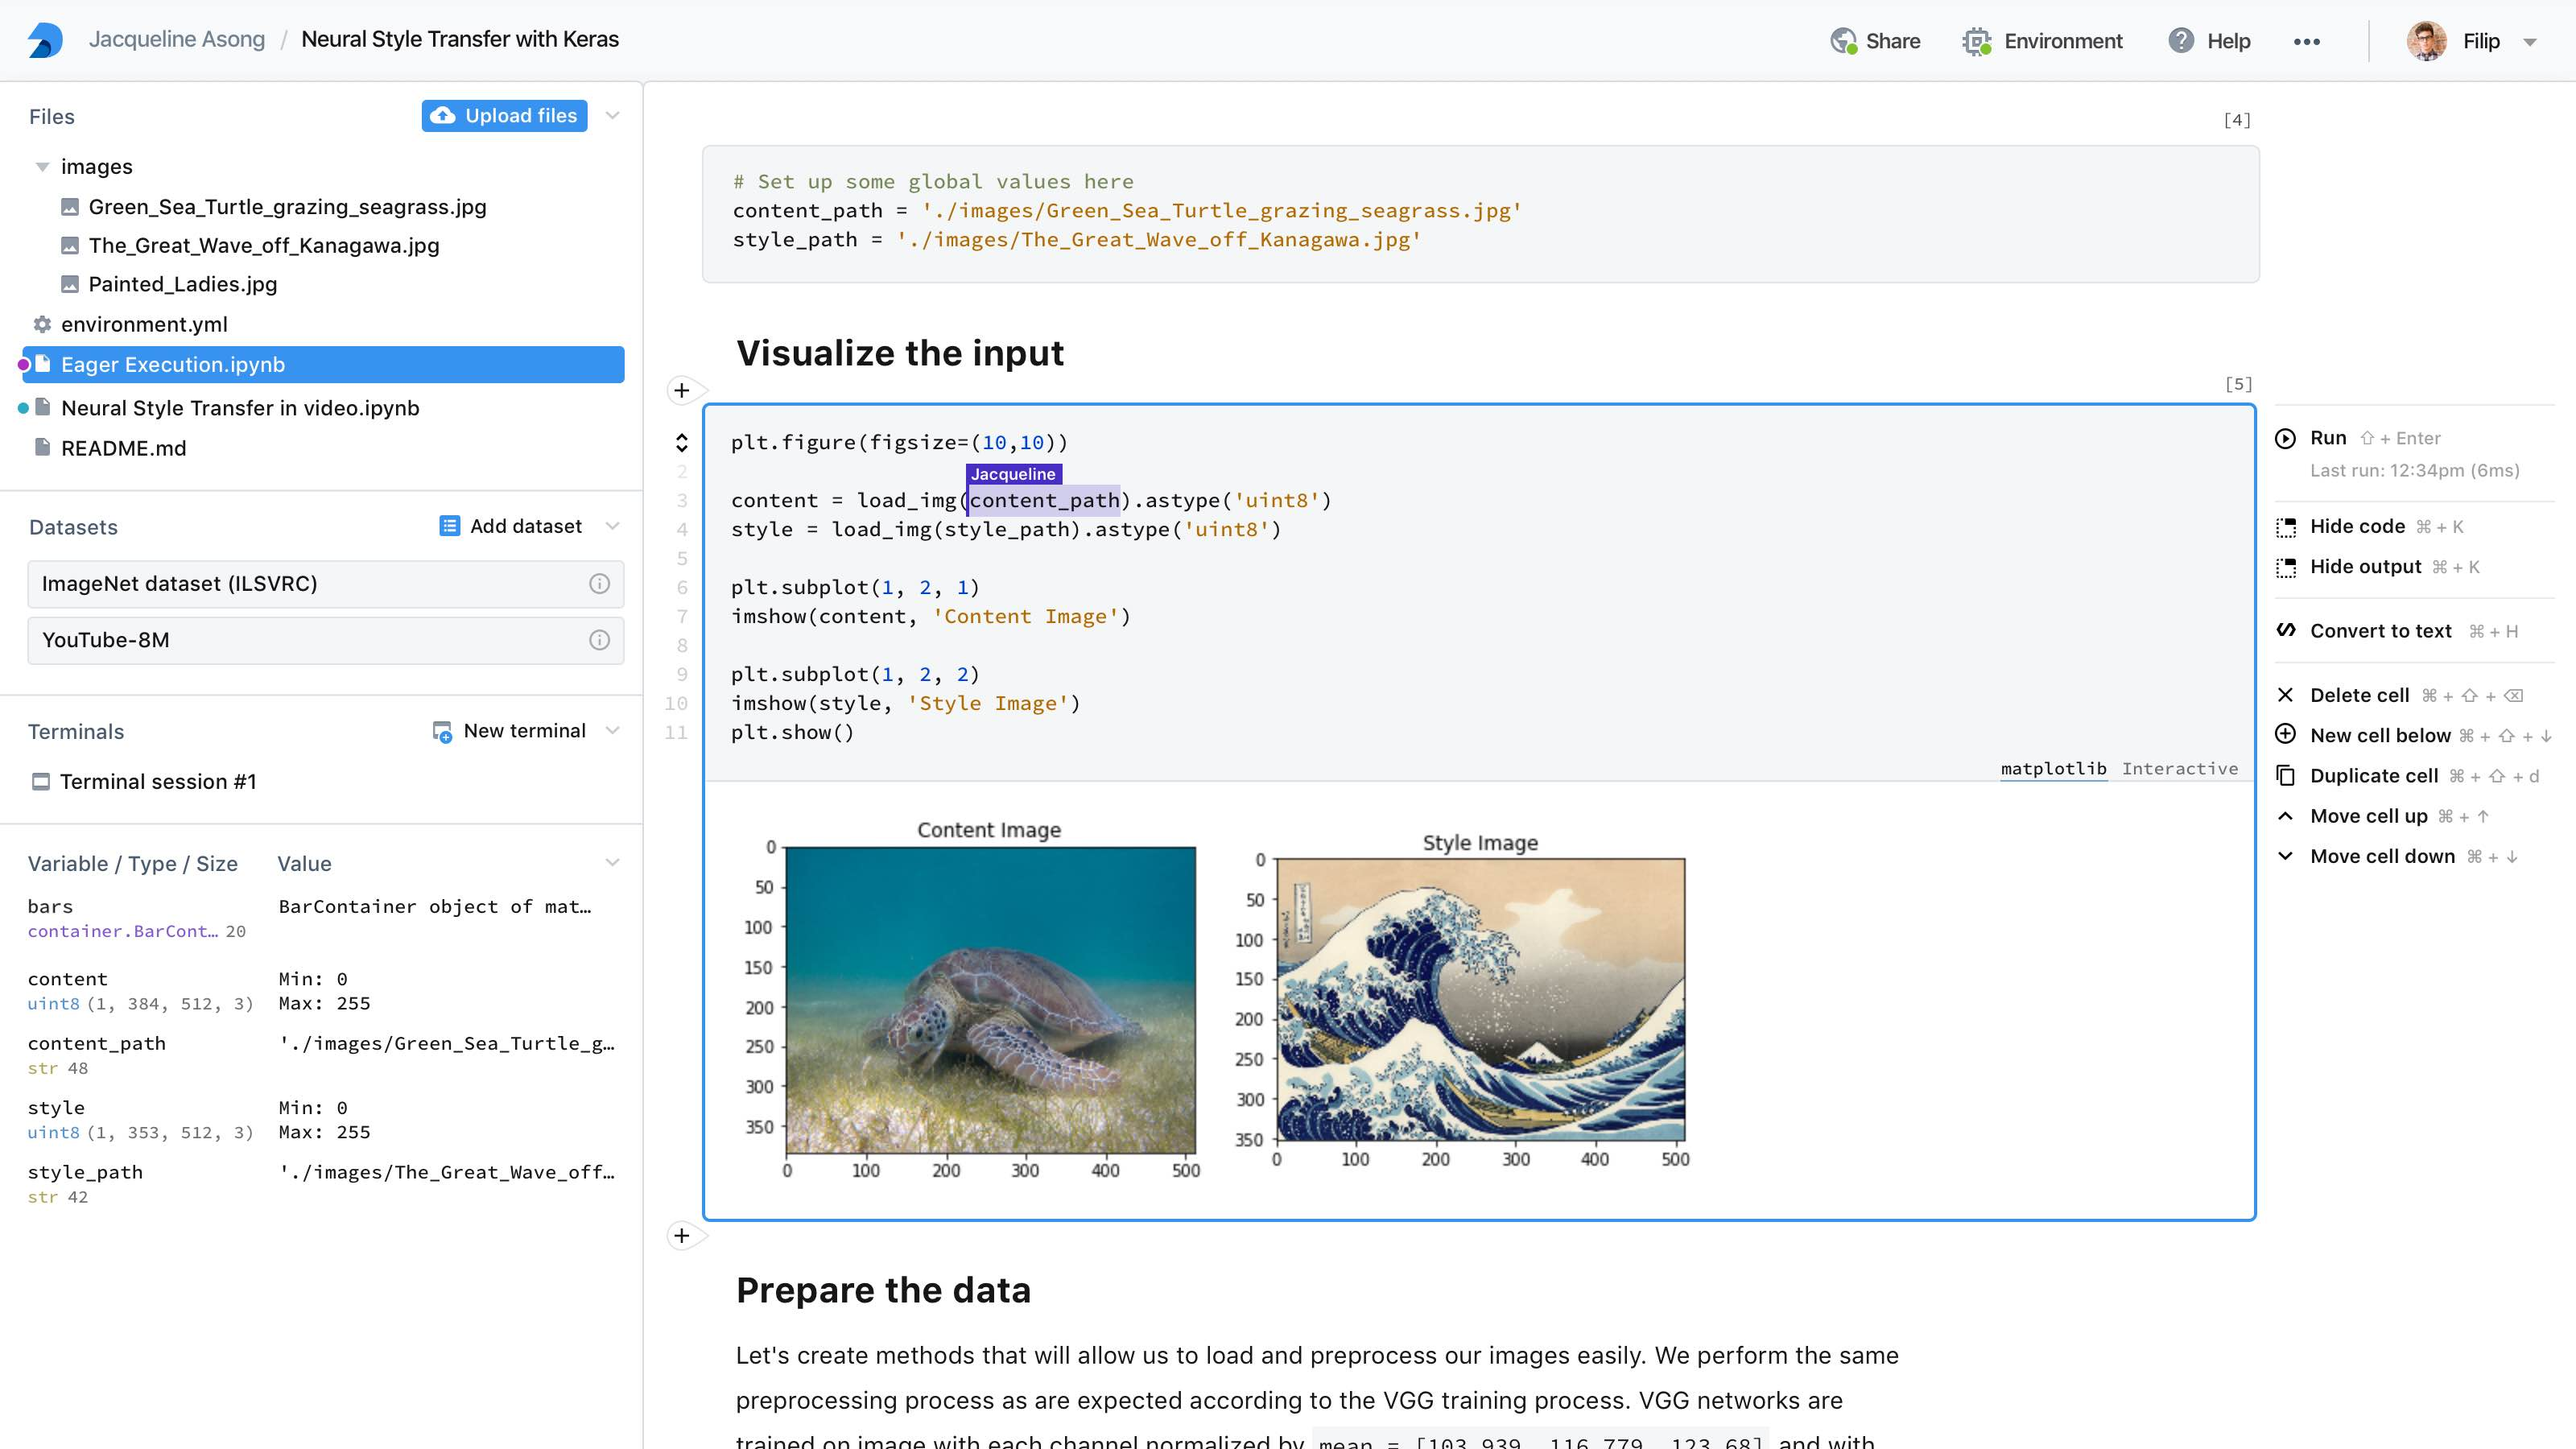 DeepNote's Jupyter-like data science environment